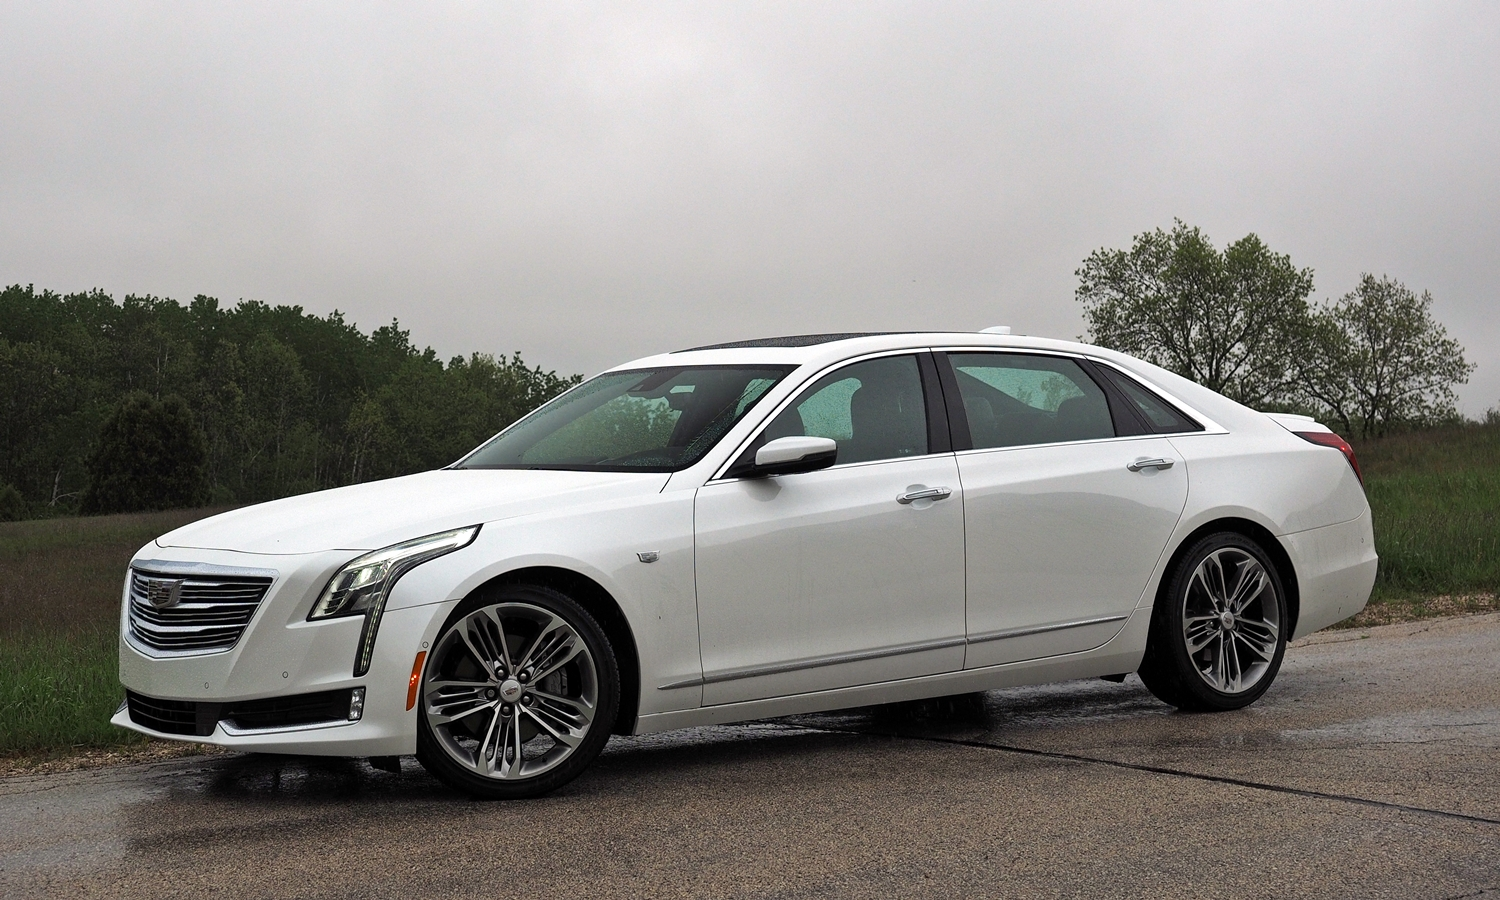 Genesis G90 Photos: Cadillac CT6 front quarter view